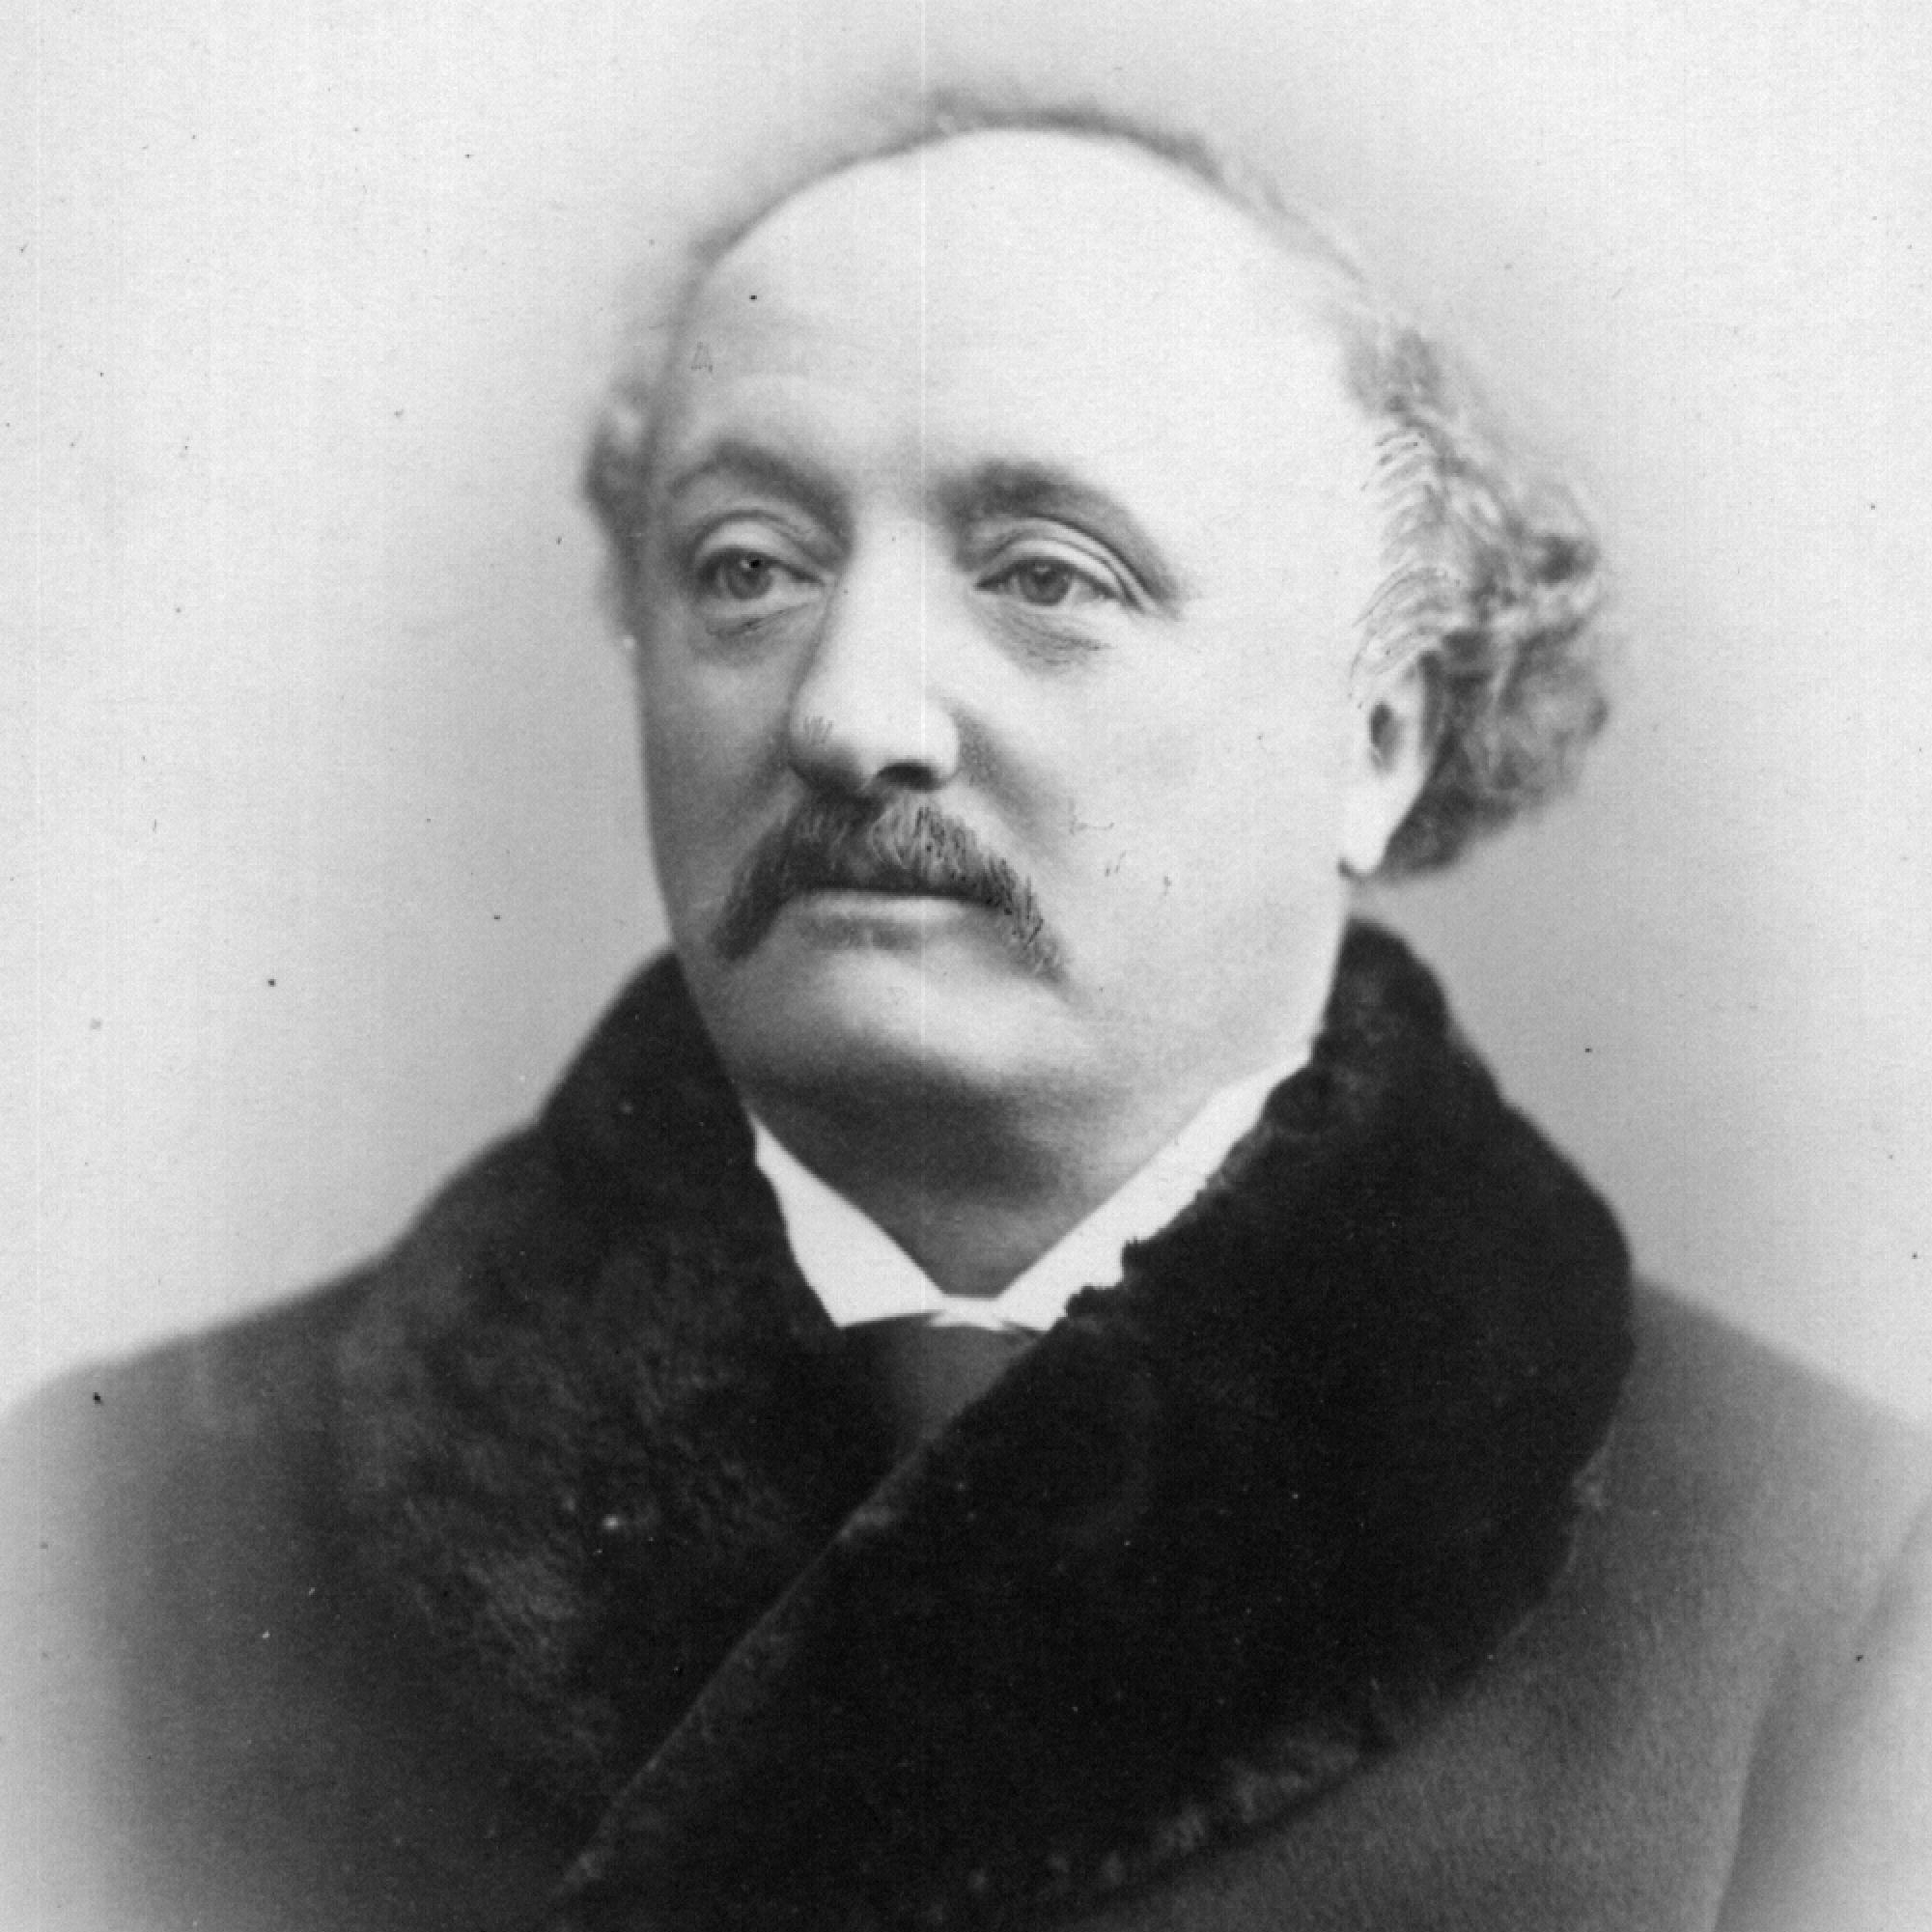 Sir John Stainer  (6 June 1840 – 31 March 1901)